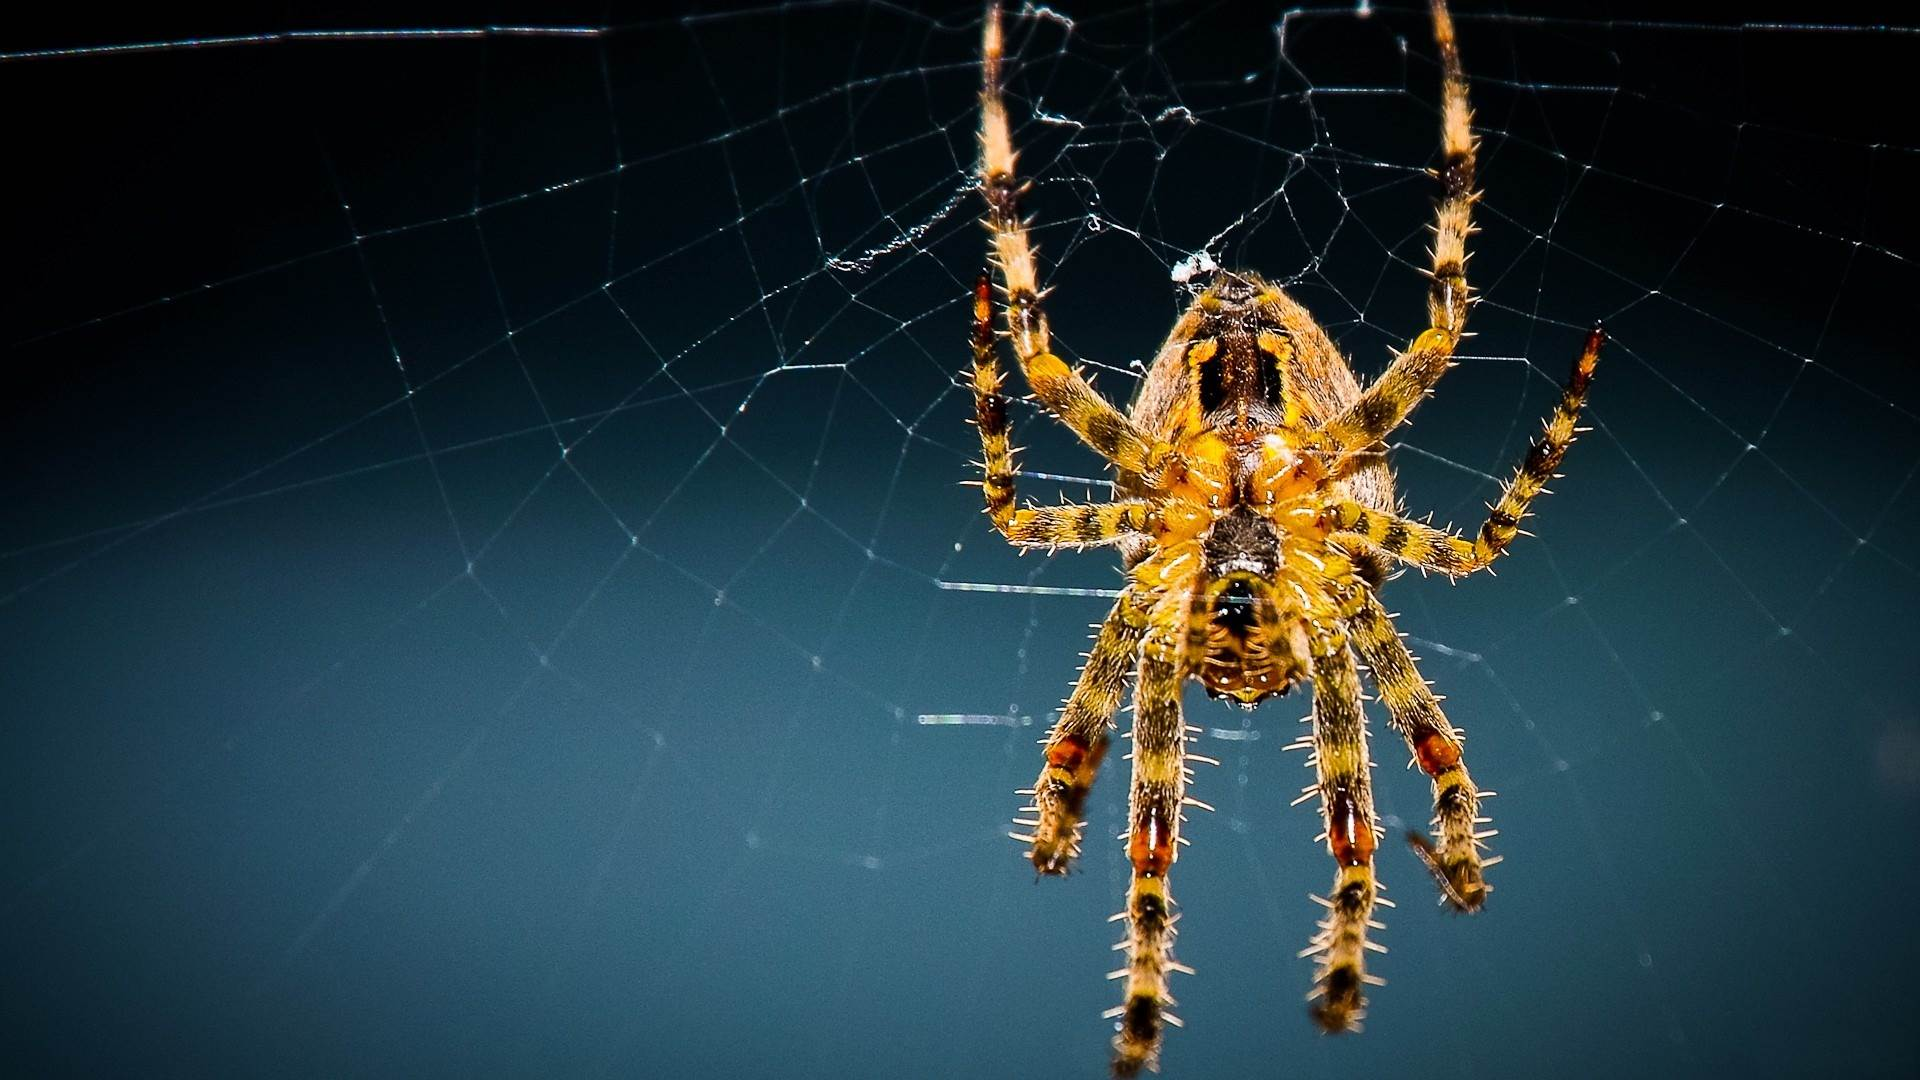 Beautiful spider web images